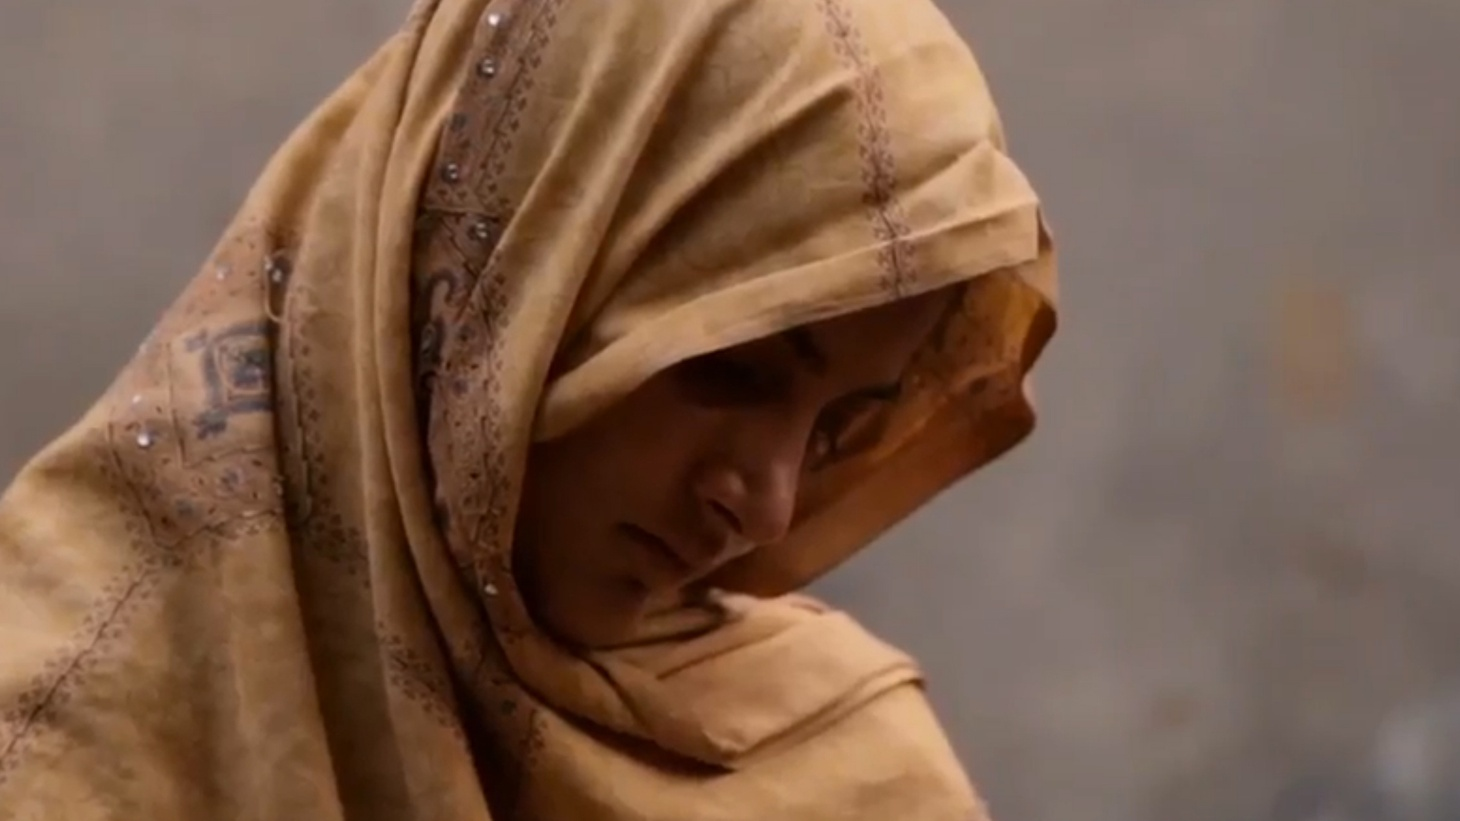 When 19-year-old Saba Qaiser fell in love and ran off to marry her boyfriend, her family was not happy. That might have been the end of it if Saba was from Paris or Toronto. But she's Pakistani, and there's a tradition of honor killings in that country. Saba's father and uncle beat her, shot her and dumped her body in a river.